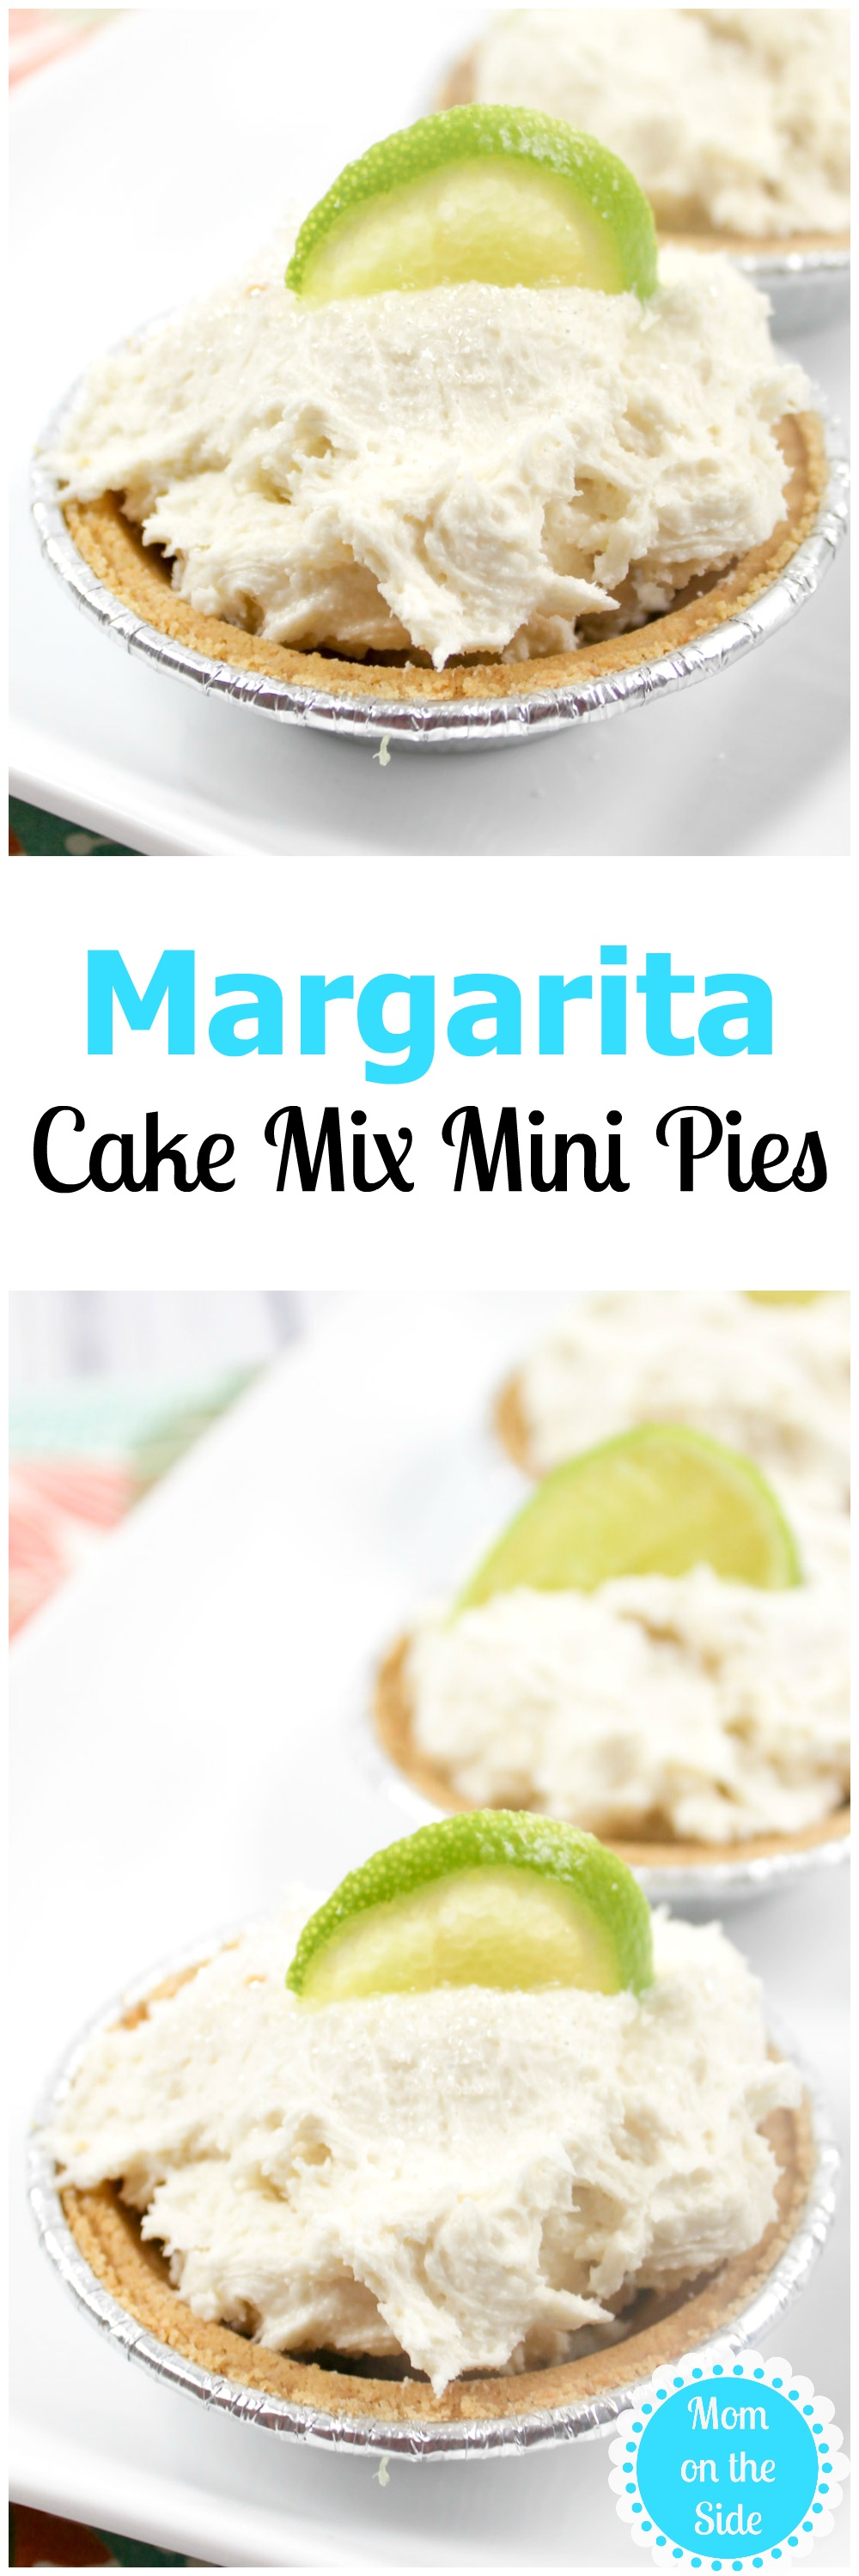 Adult Dessert: Margarita Cake Mix Mini Pies